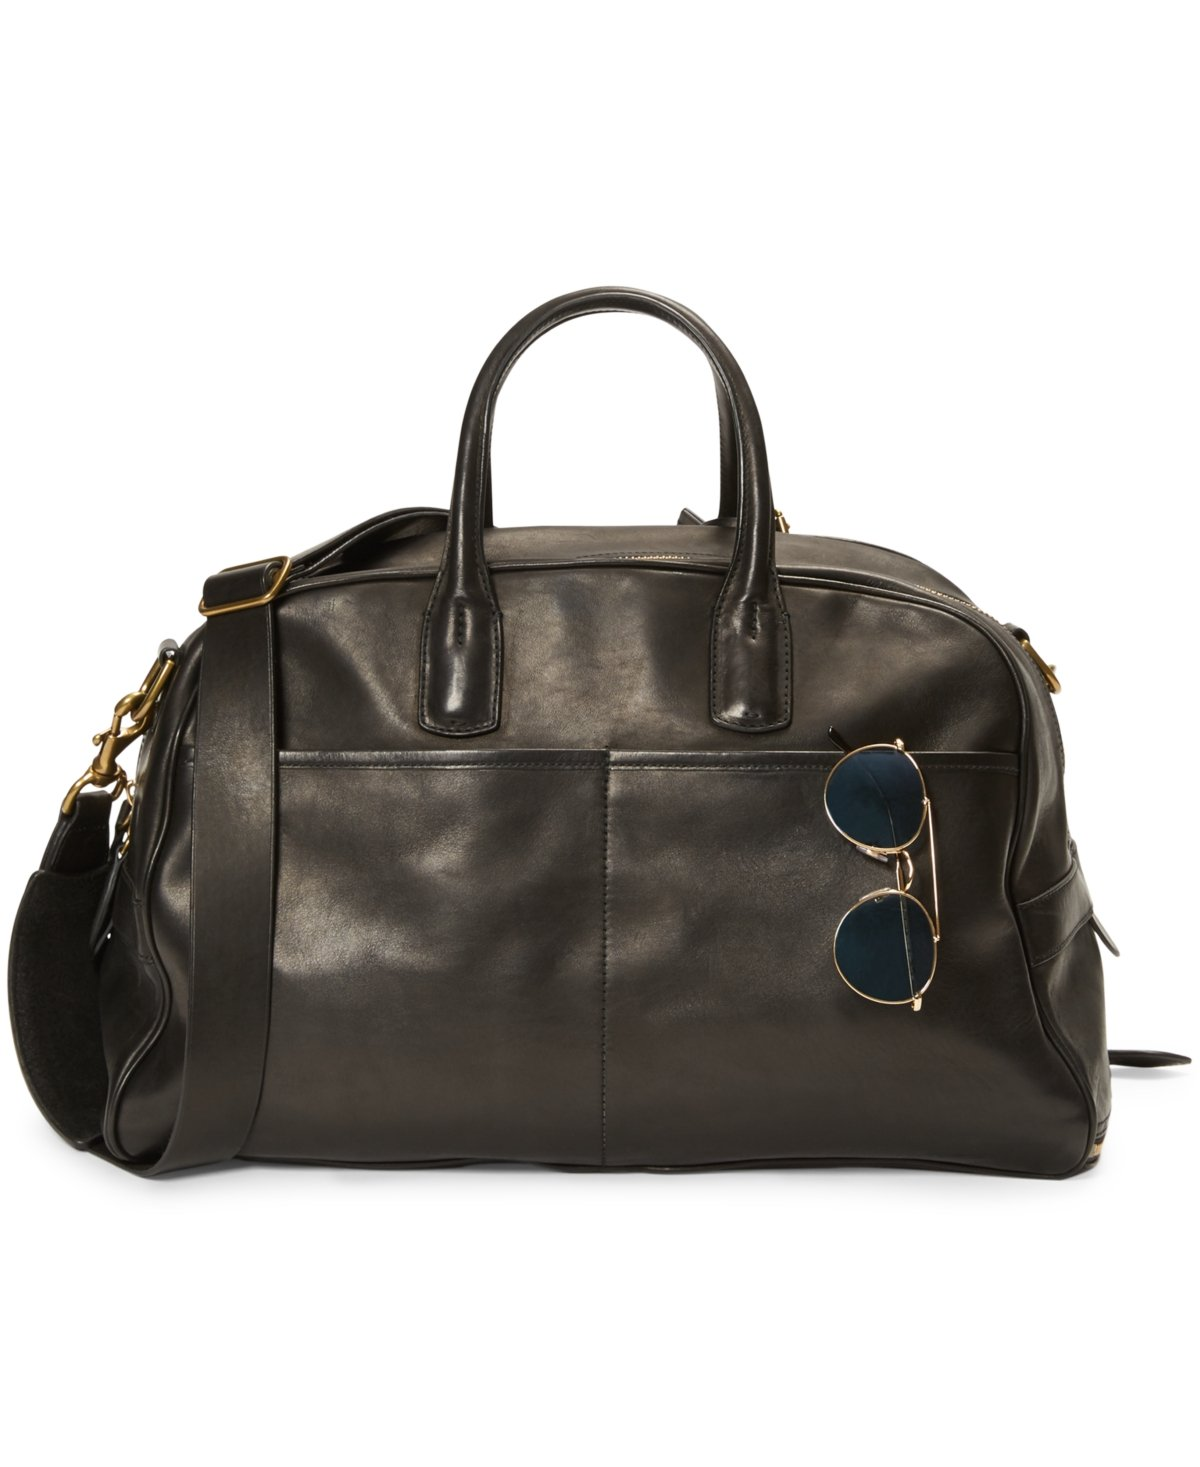 e75ec39d4 Galleon - Polo Ralph Lauren Leather Sports Carryall Gym Bag, Black, 1 Size